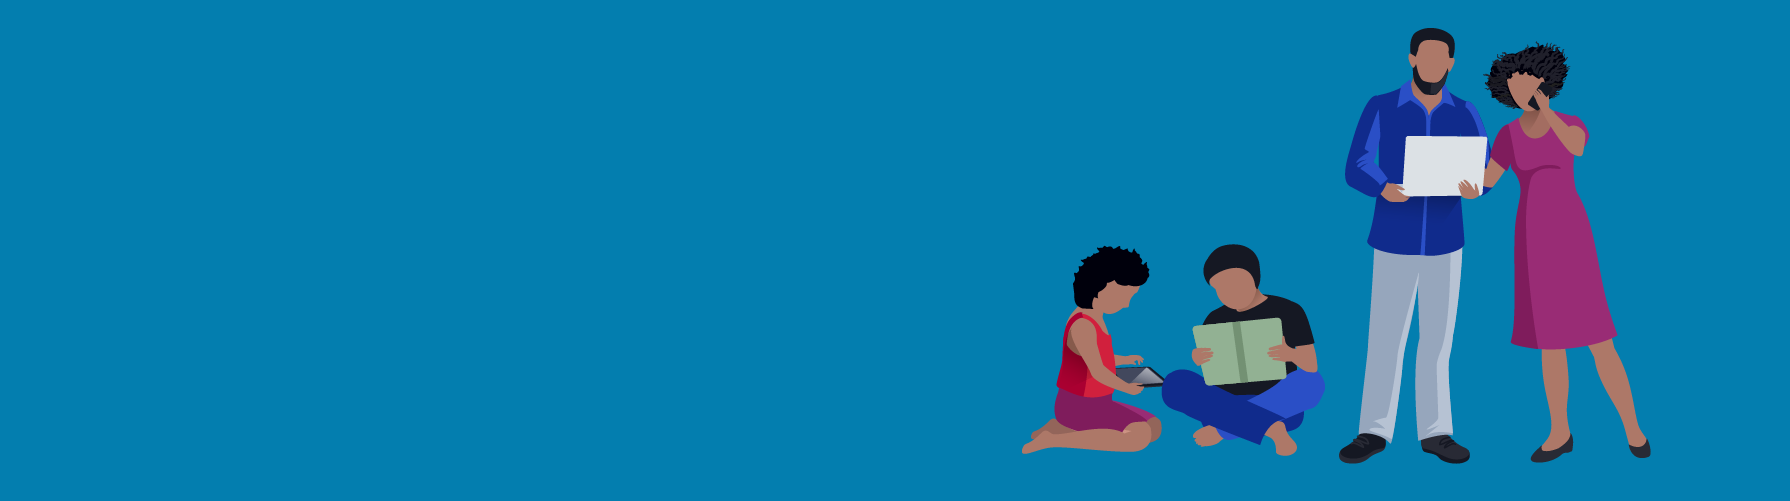 Illustration of a family, the parents on the phone and on a laptop, the children sitting down reading.